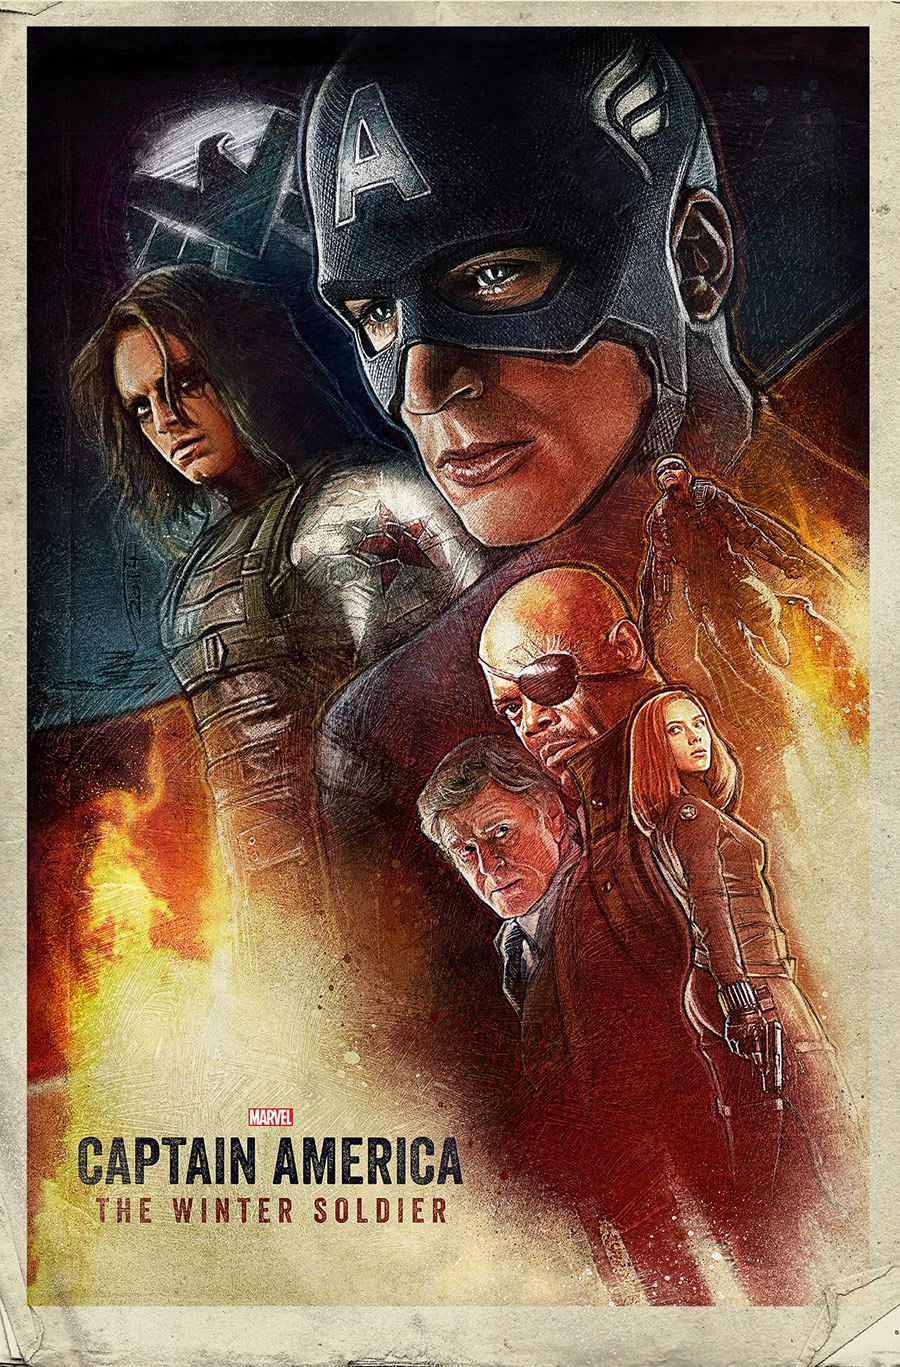 Paul shipper movie posters 4